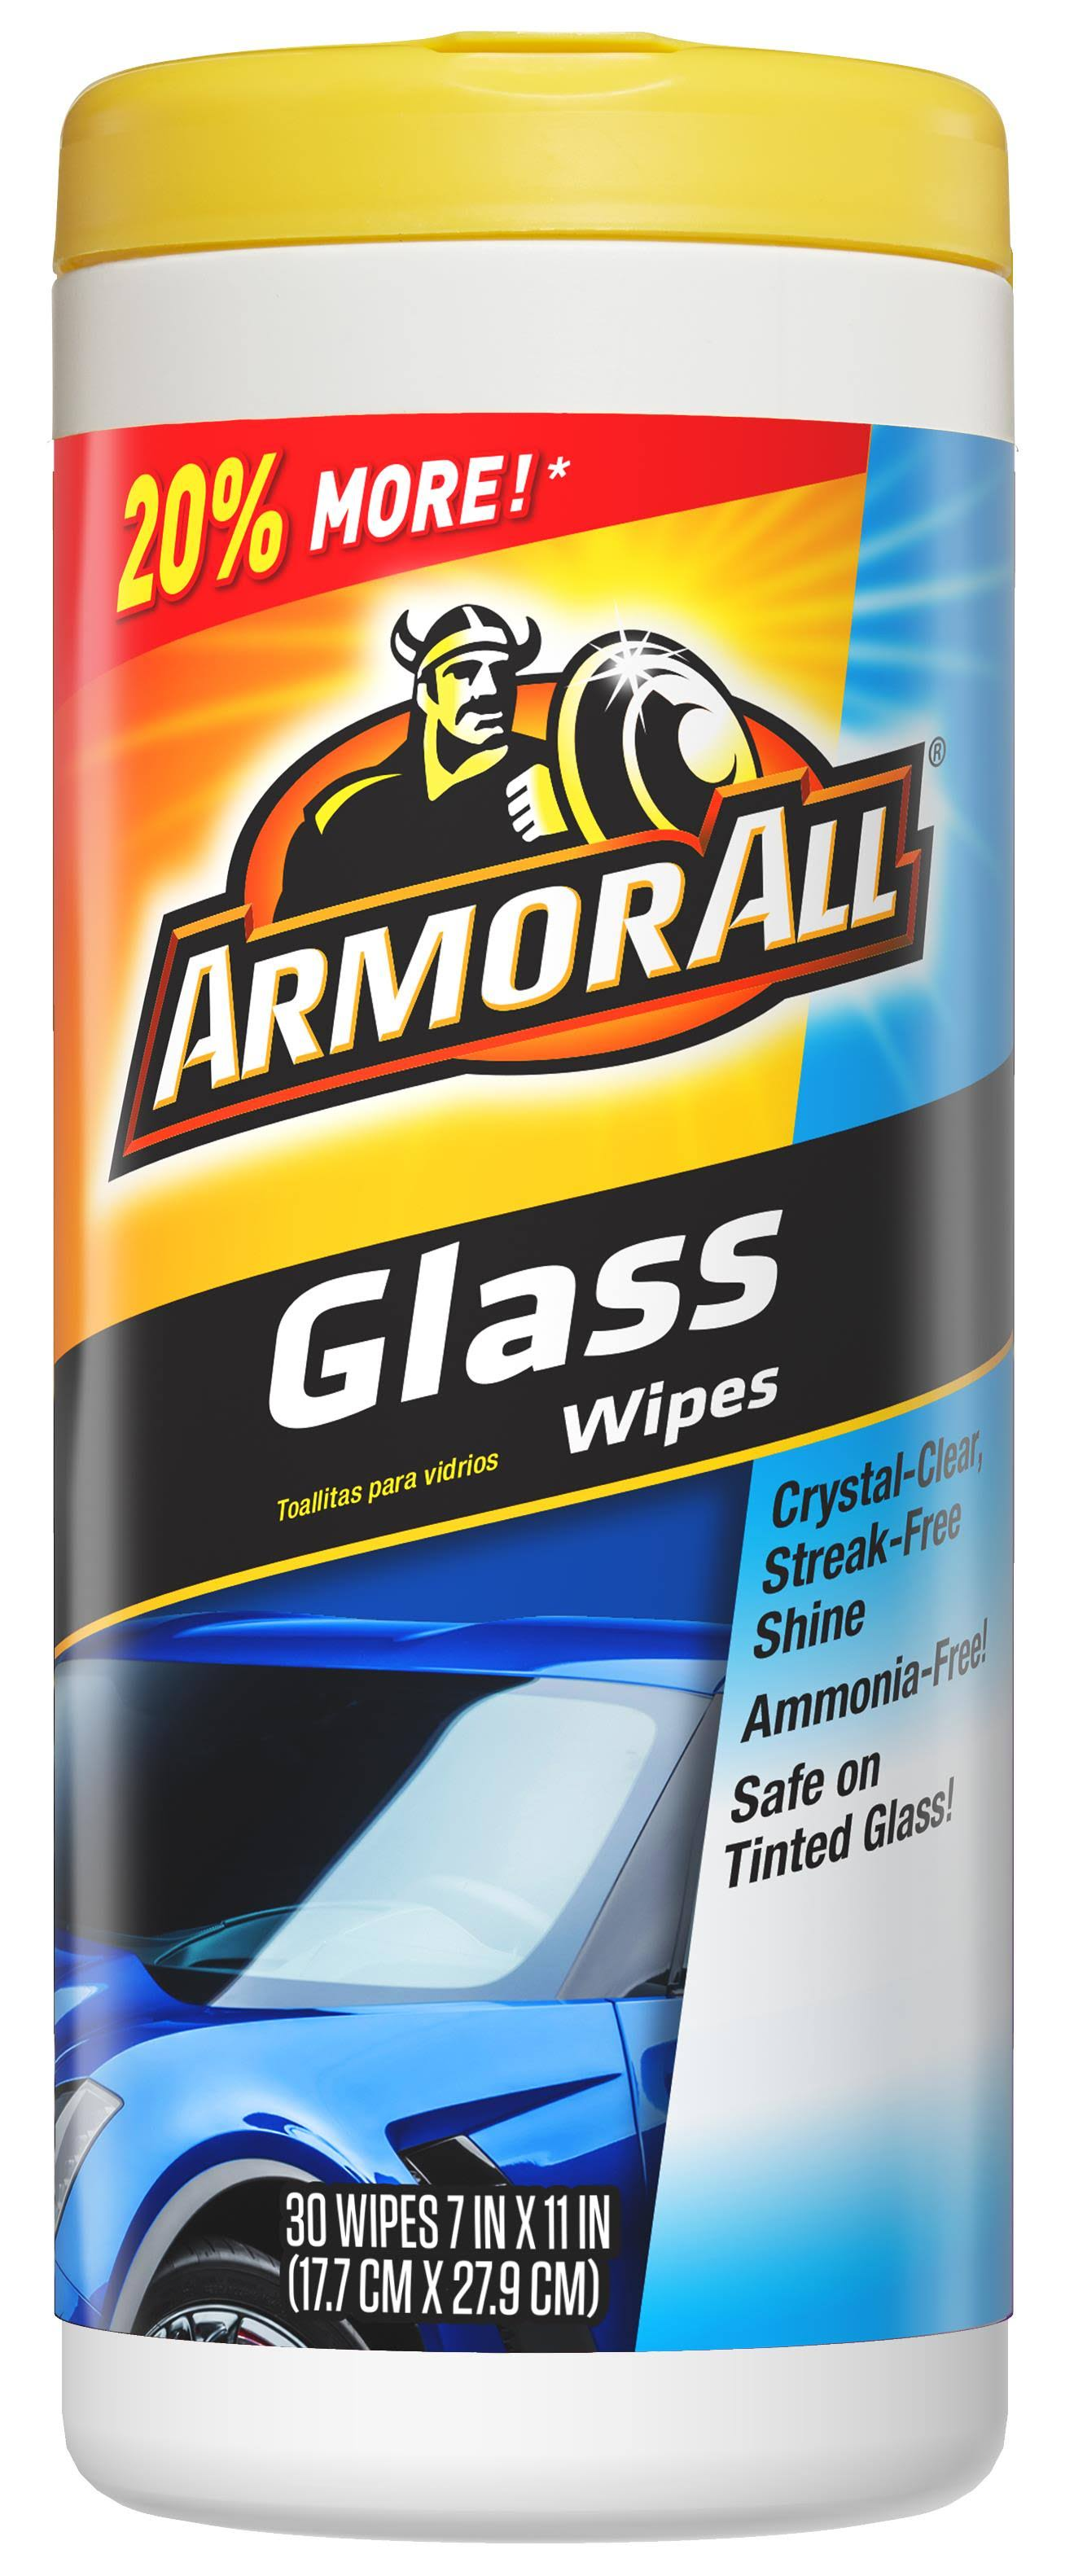 Armor All Glass Cleaning Wipes - 30ct